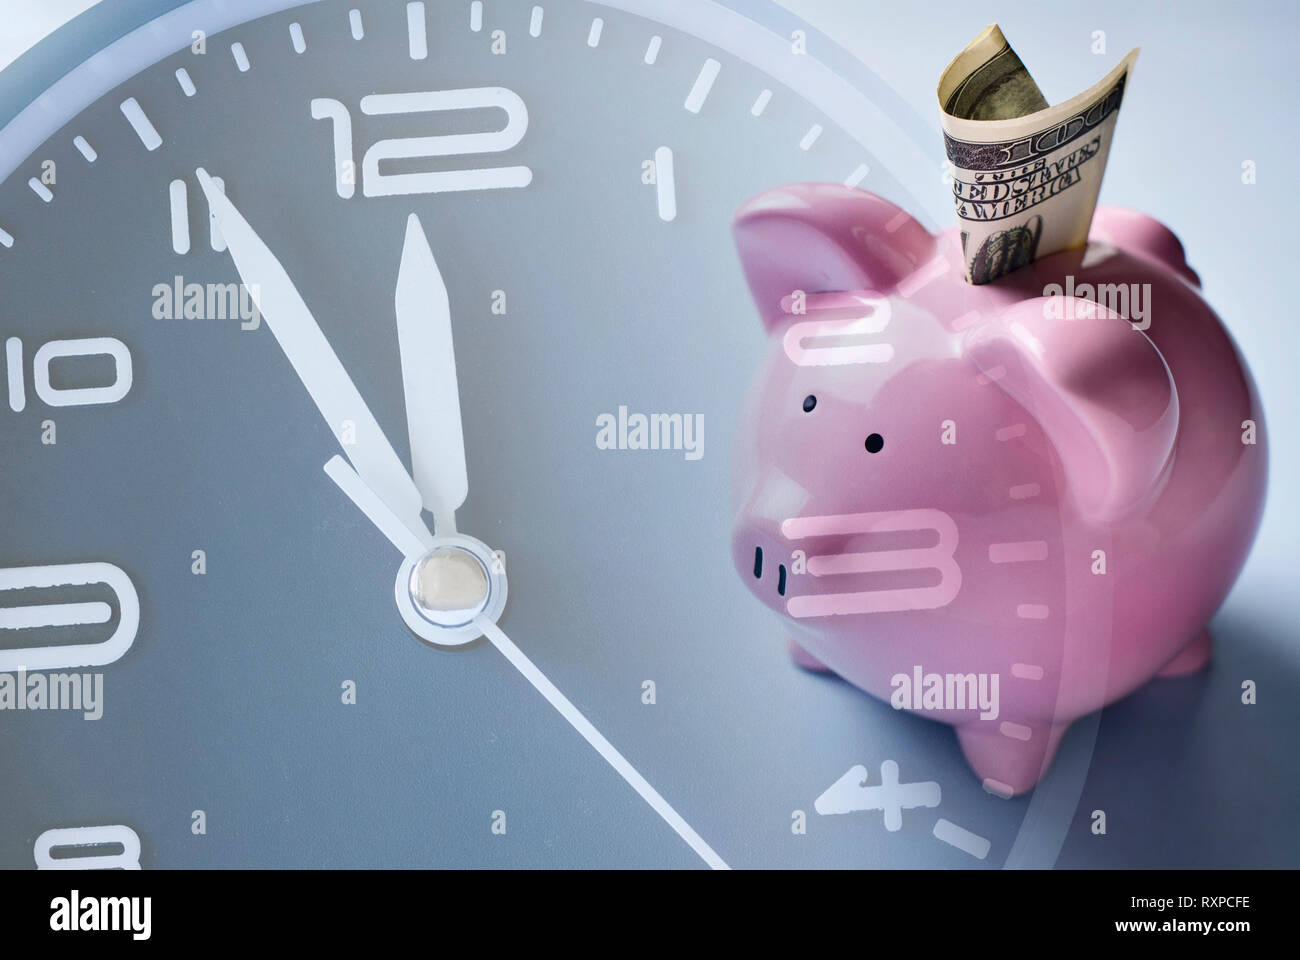 Savings, investment or nest egg concept with a pink piggy bank in a composite image with the dial of a clock showing passing time, deadline or countdo - Stock Image